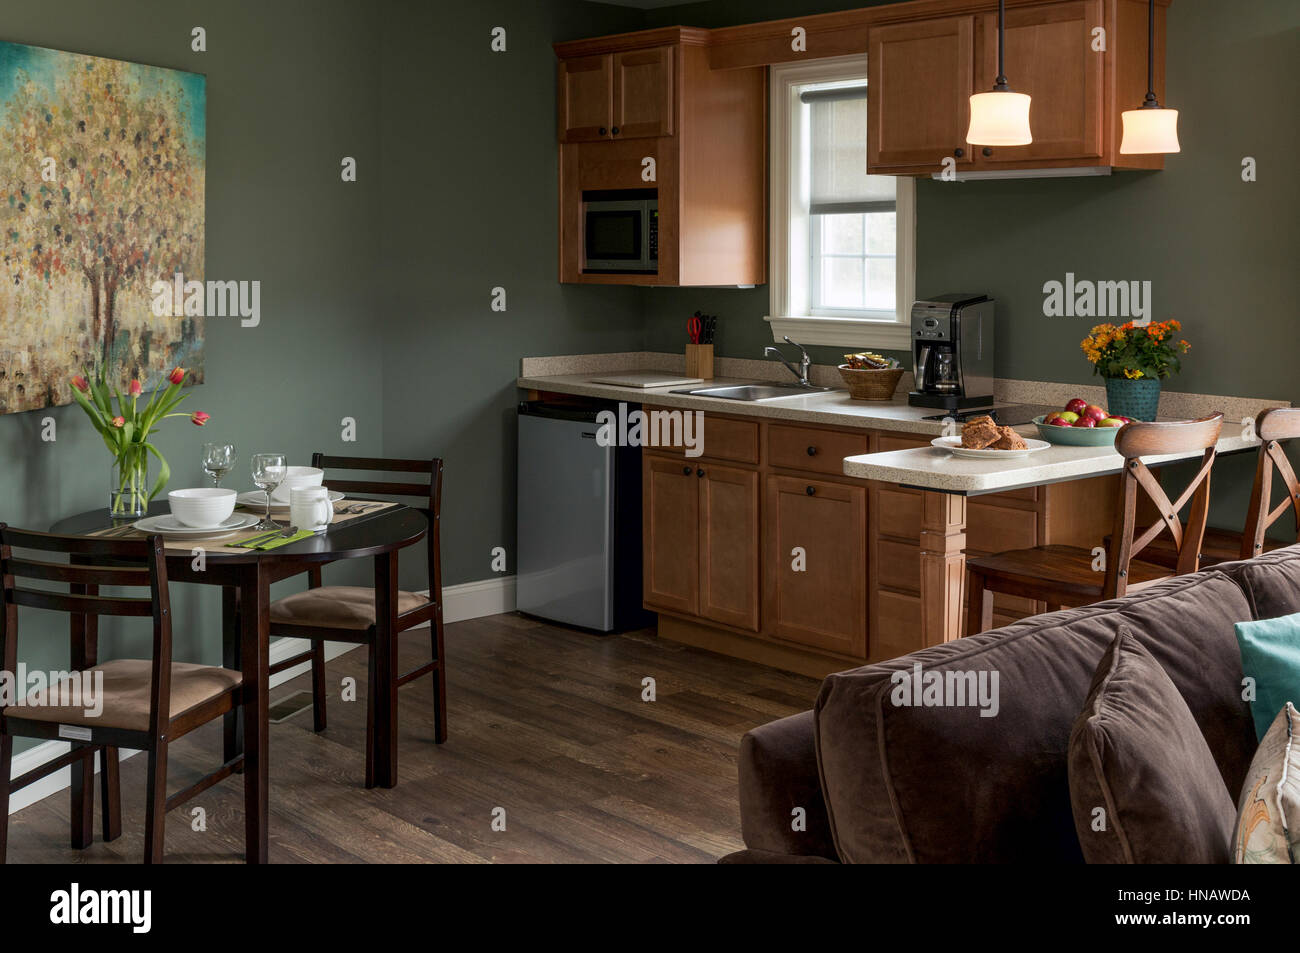 Kitchenette and dining table at a Maryland Inn, Inn on ...